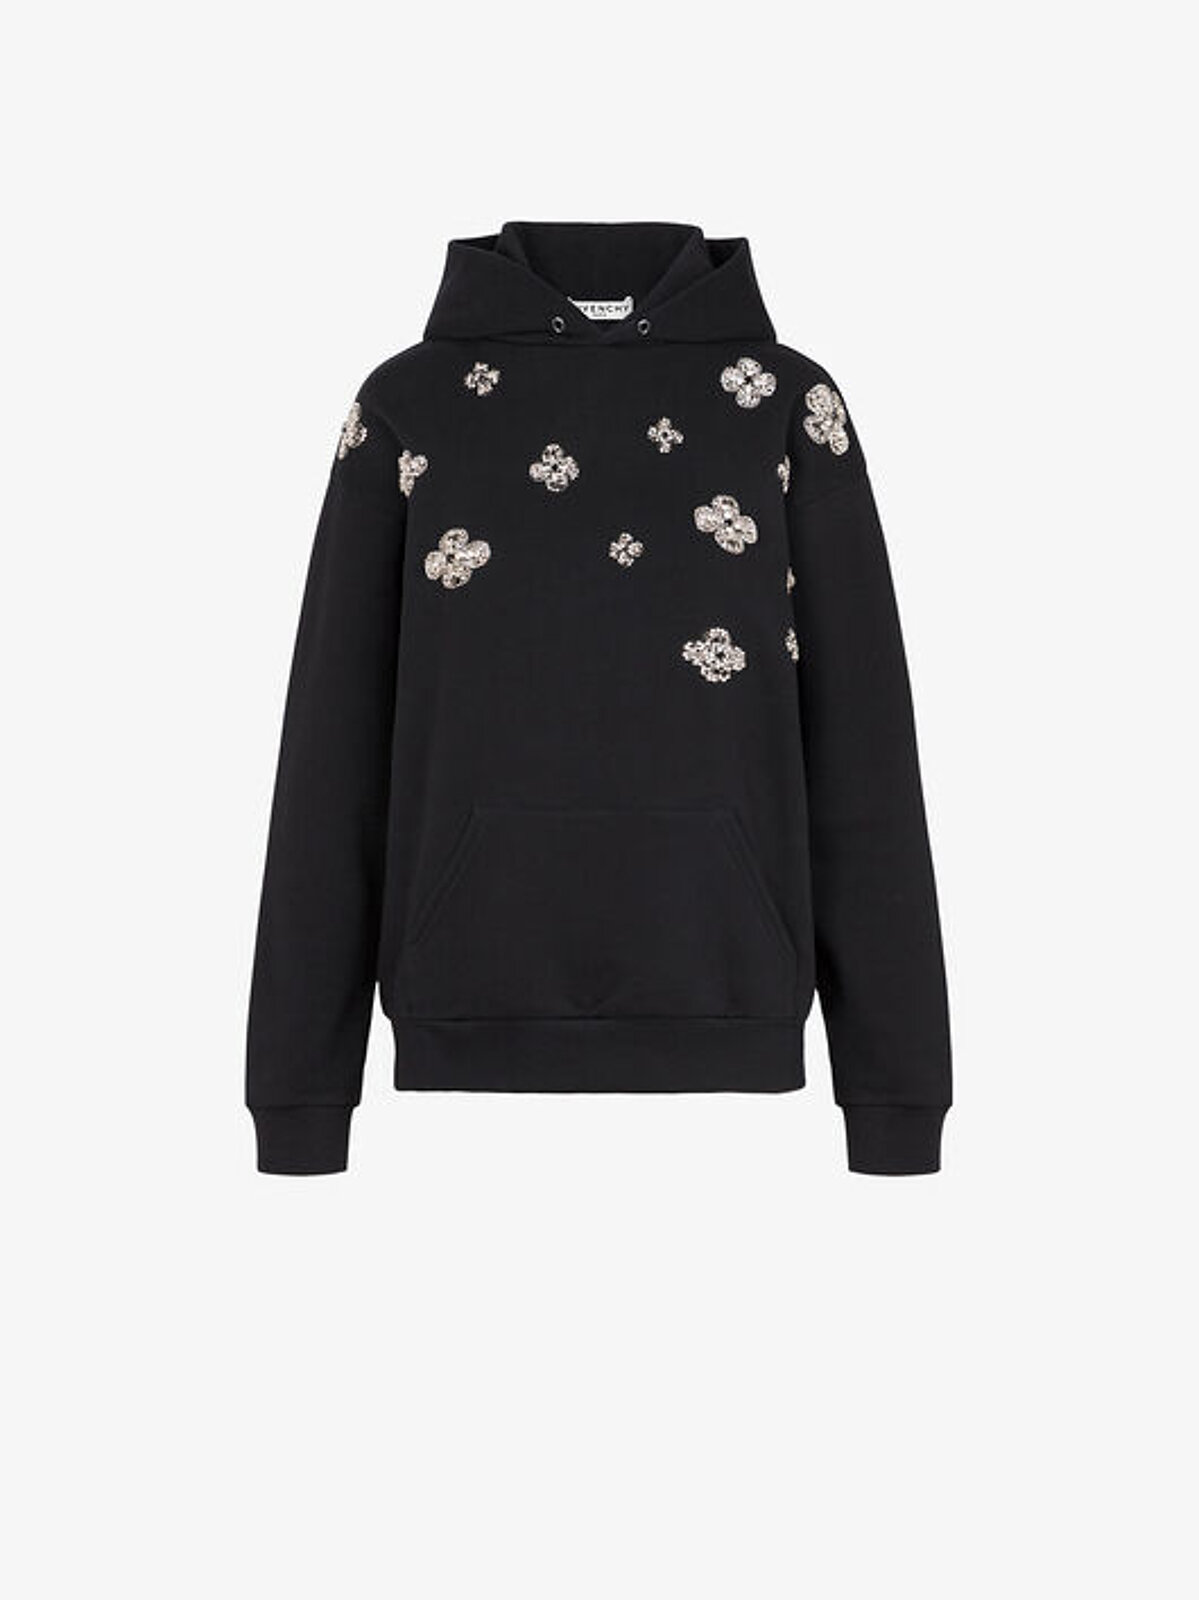 Sweatshirt With Floral Embroidery Givenchy - Givenchy